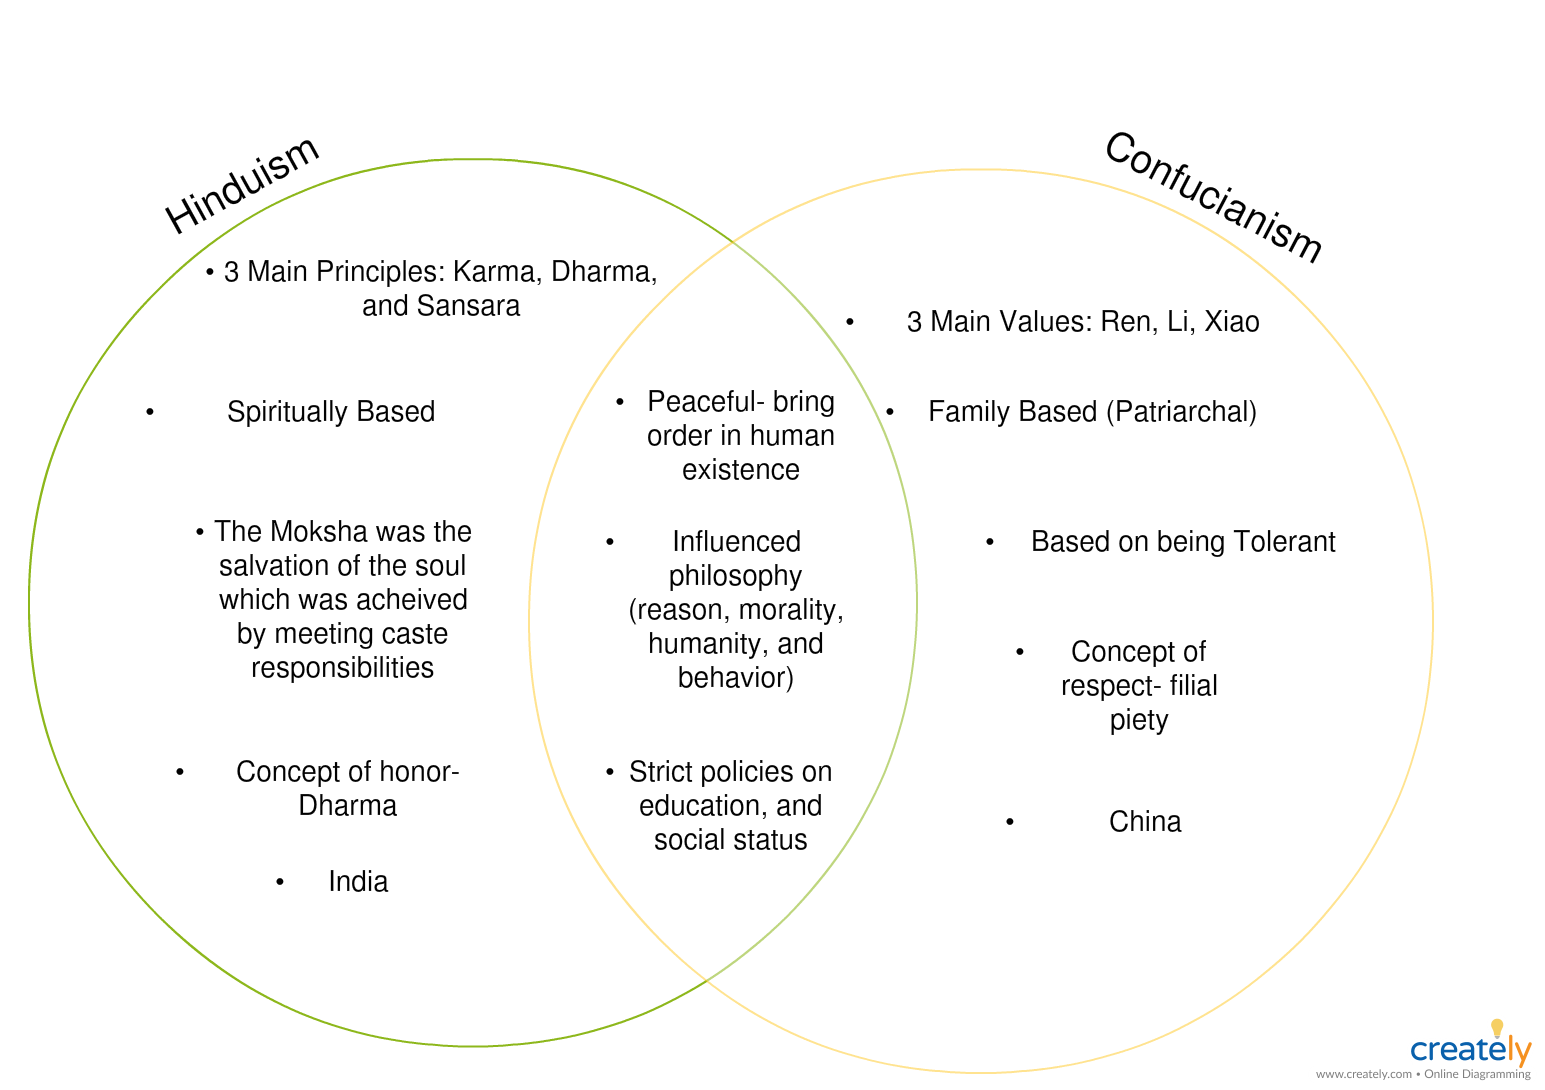 hinduism and confucianism you can edit this template and create your own diagram creately [ 1545 x 1090 Pixel ]